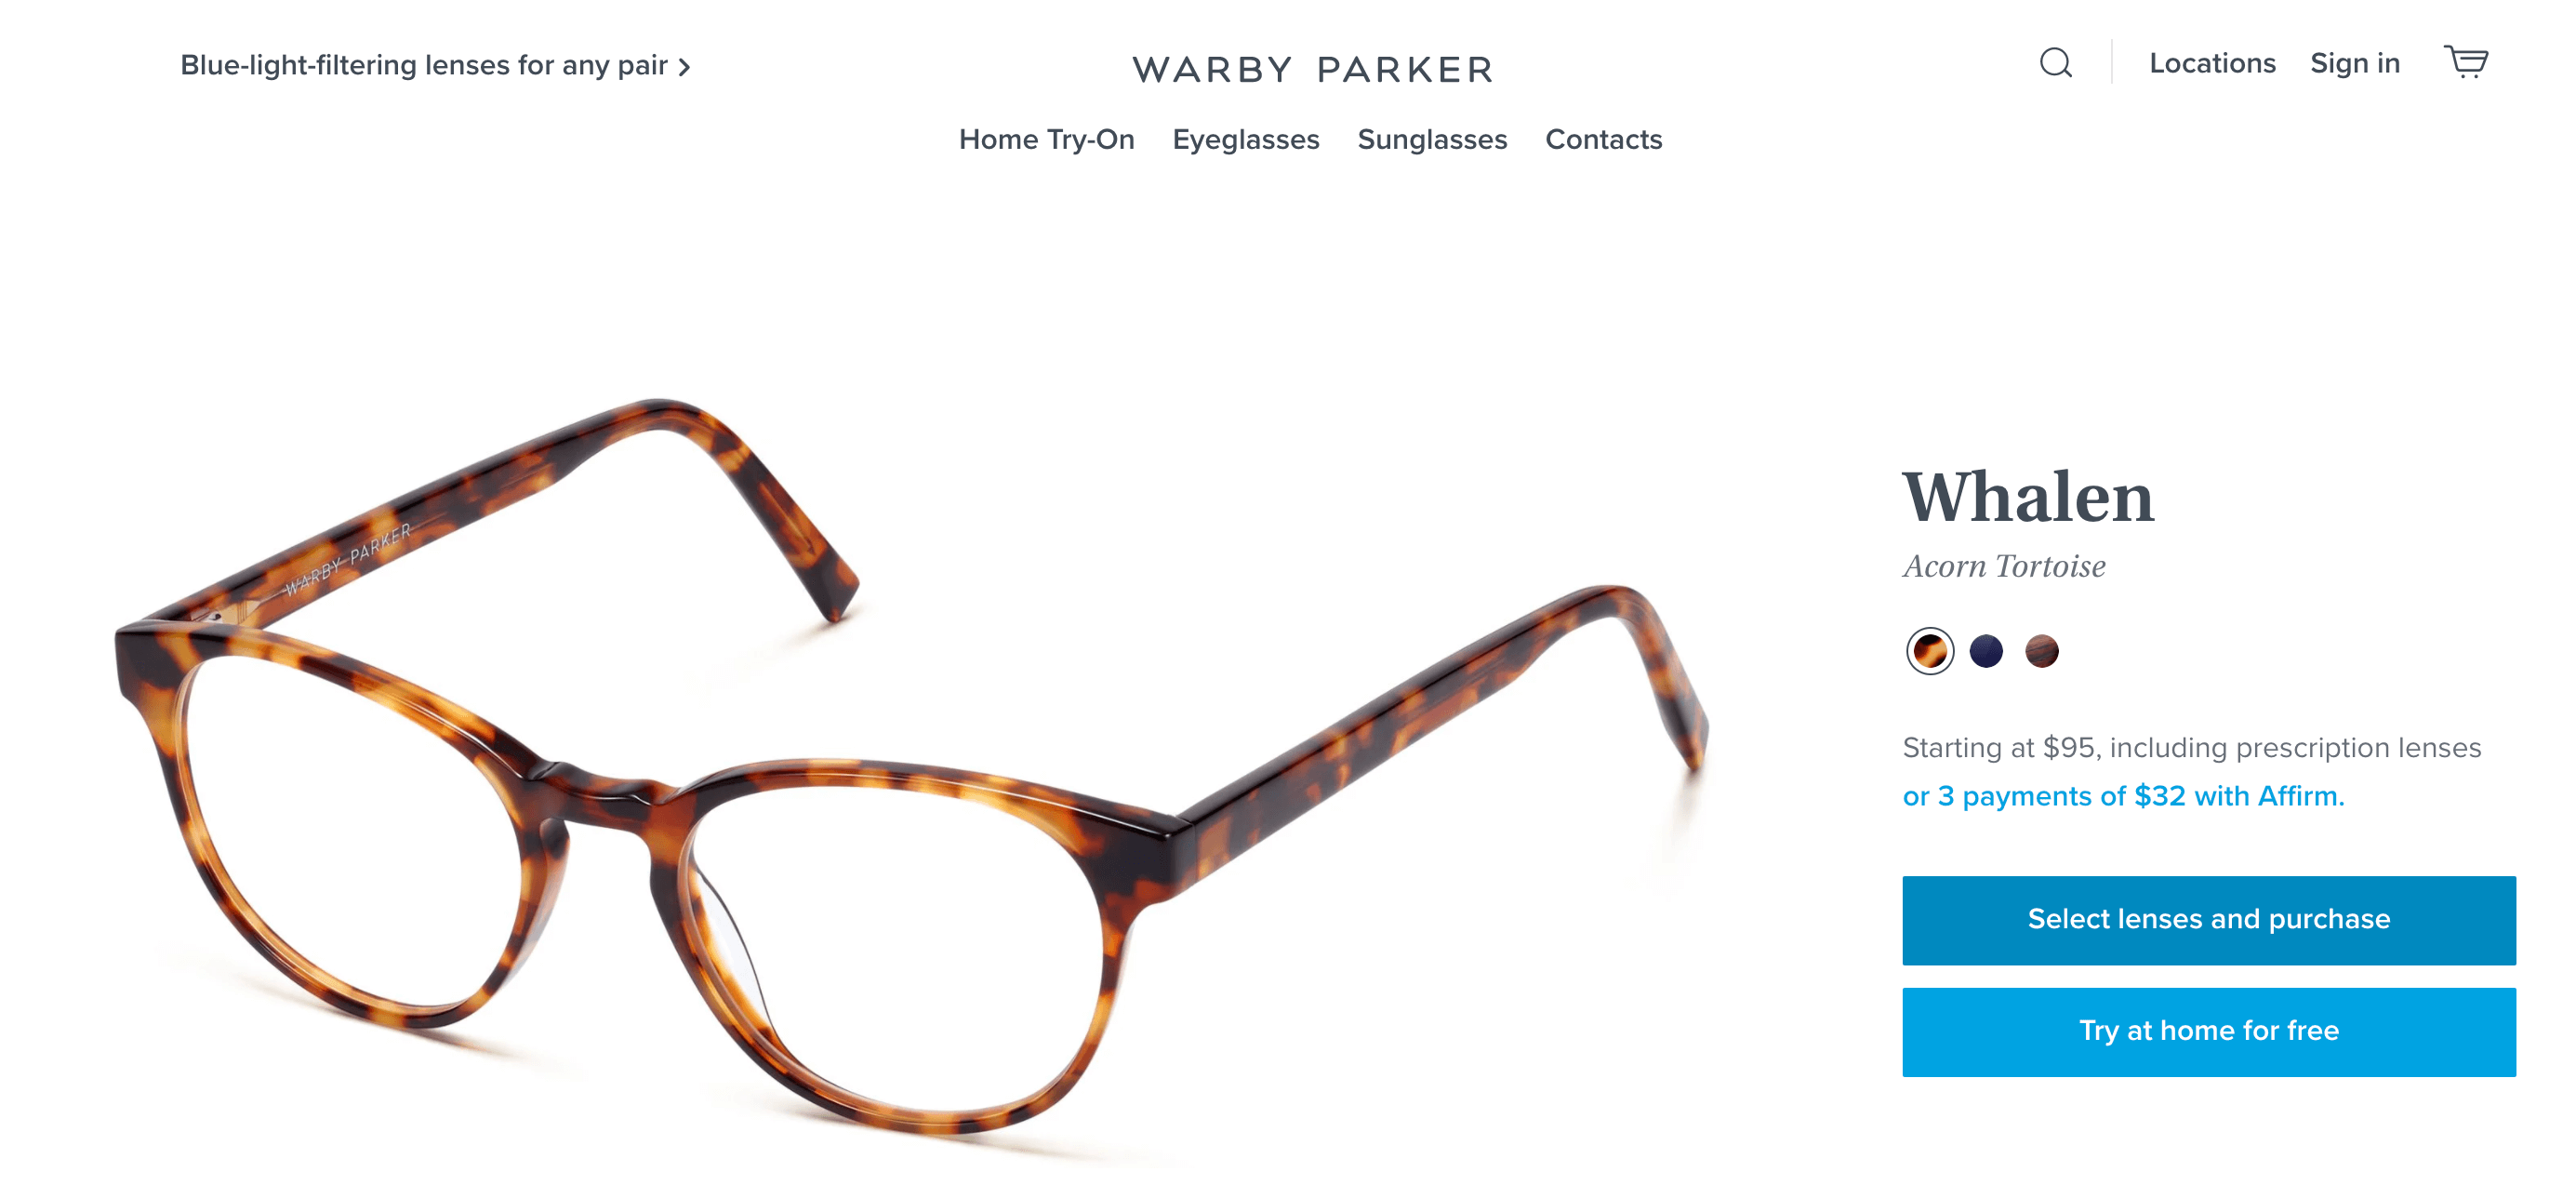 Warby Parker Add To Cart Button